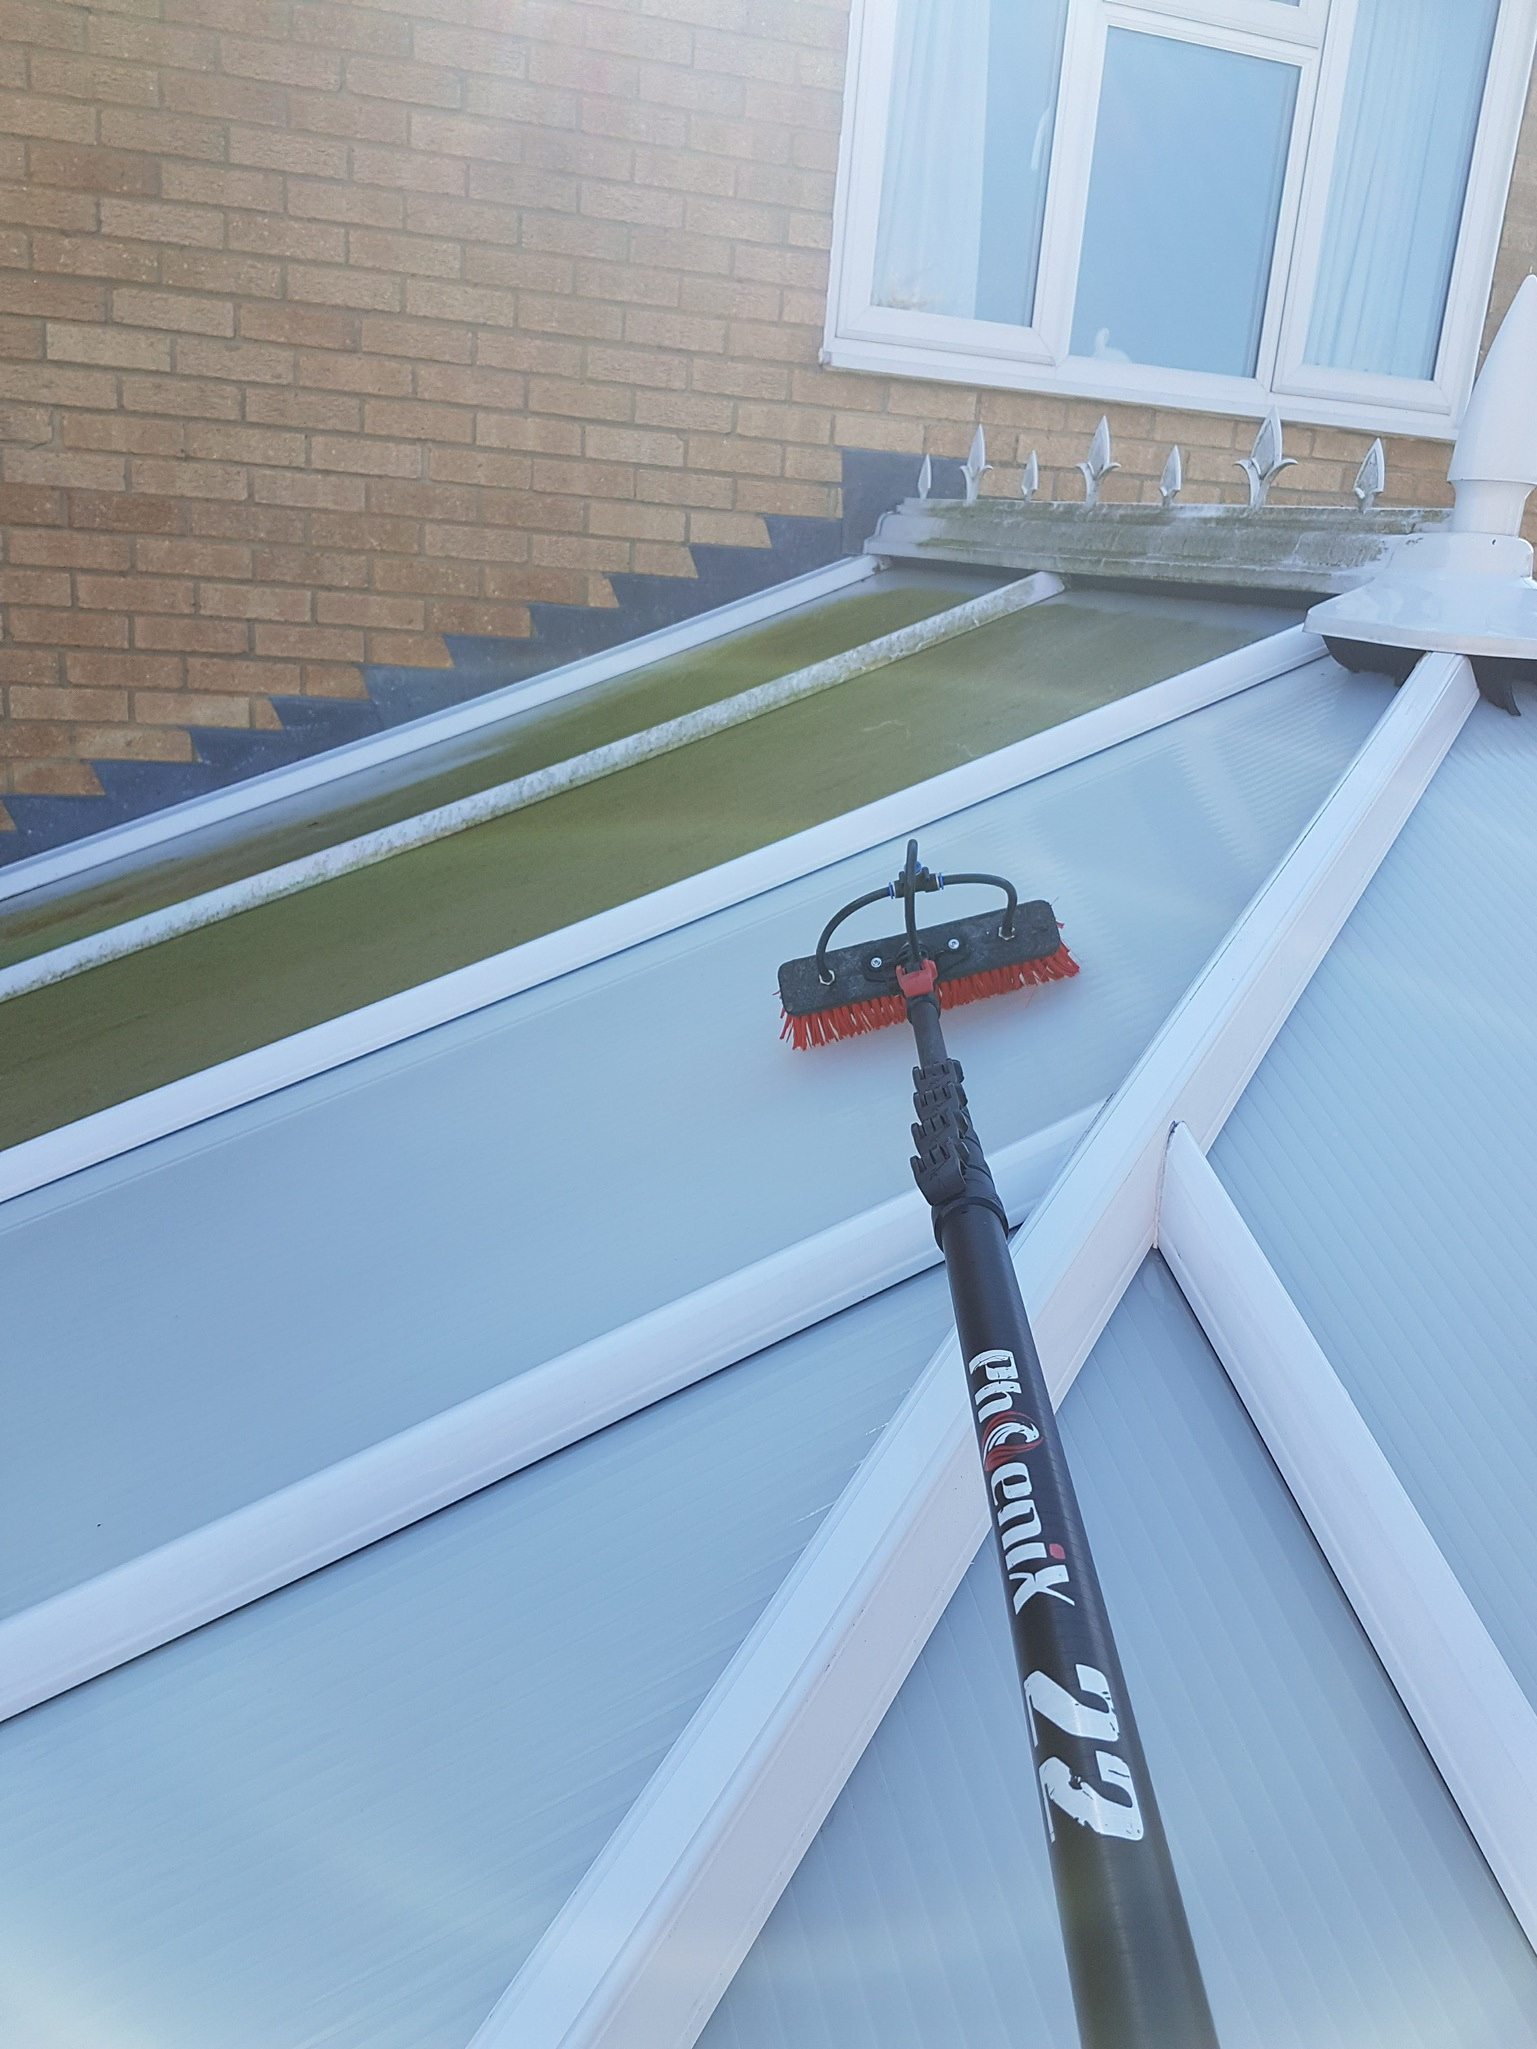 does your conservatory need cleaning? - Conservatories are a great space to add onto a house. Over time however if not cleaned then conservatories can become green with algae, losing the brand new look they once had. At MAC Cleaning we specialise in conservatory roof cleaning in luton.We use specialist chemicals that are kind to the environment but powerful enough to rejuvenate the conservatory, bringing life back to it and light back through. We scrub the solution on and let it set, following with a rinse of pure water to remove all remaining dirt. Its a good idea to clean them as much as you can, but generally as long as they are cleaned every 6 months they will stay looking new. Would you like us to clean your conservatory? Get in touch using the live chat, or by using one of the contact options at the bottom of the page.